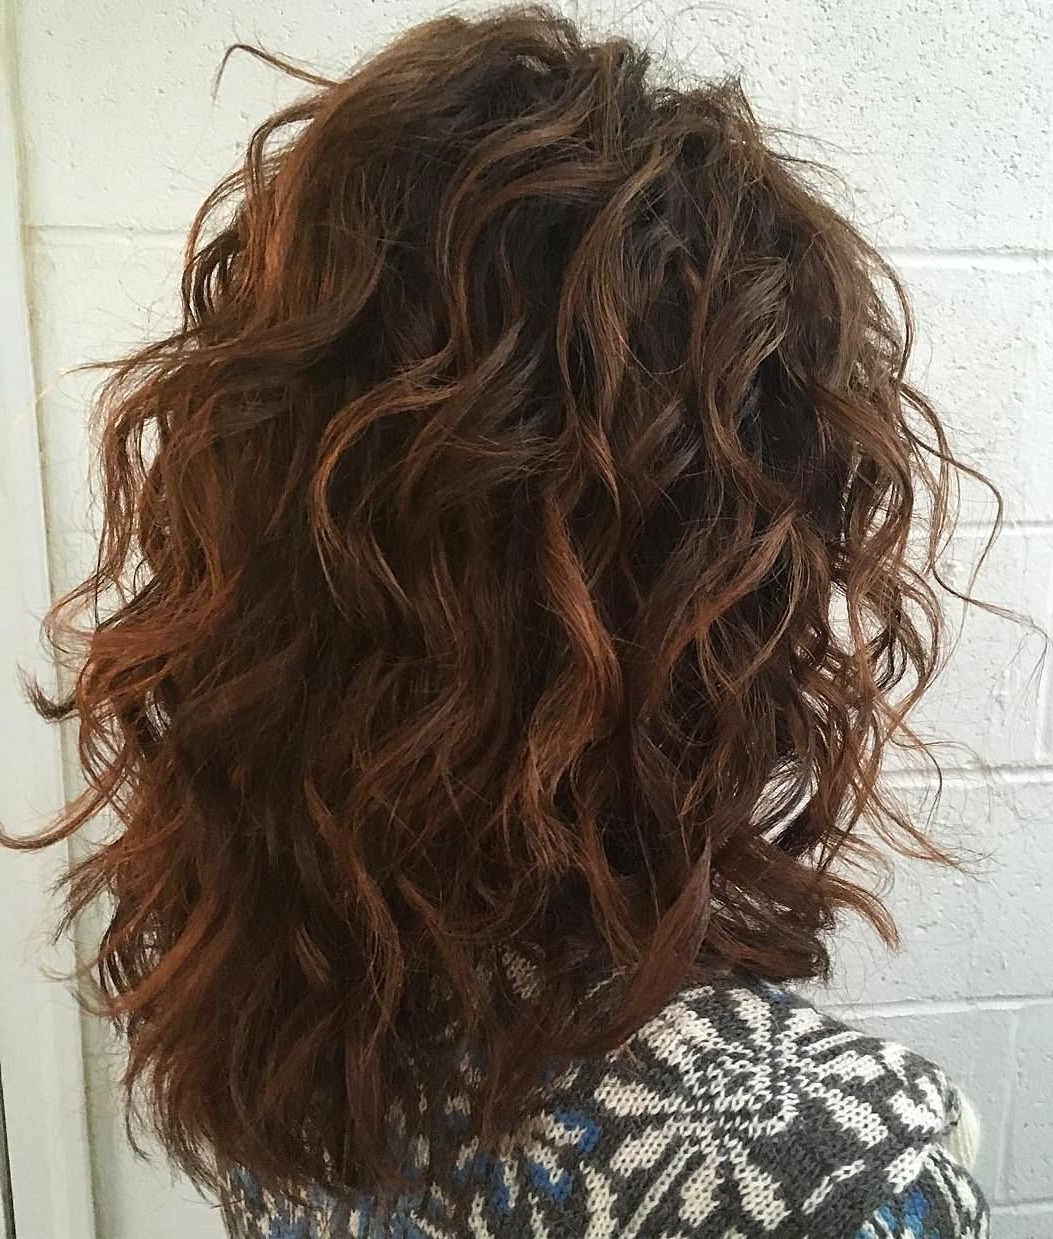 60 Most Magnetizing Hairstyles For Thick Wavy Hair In 2018 | Cute Inside Medium Short Haircuts For Thick Wavy Hair (View 3 of 25)